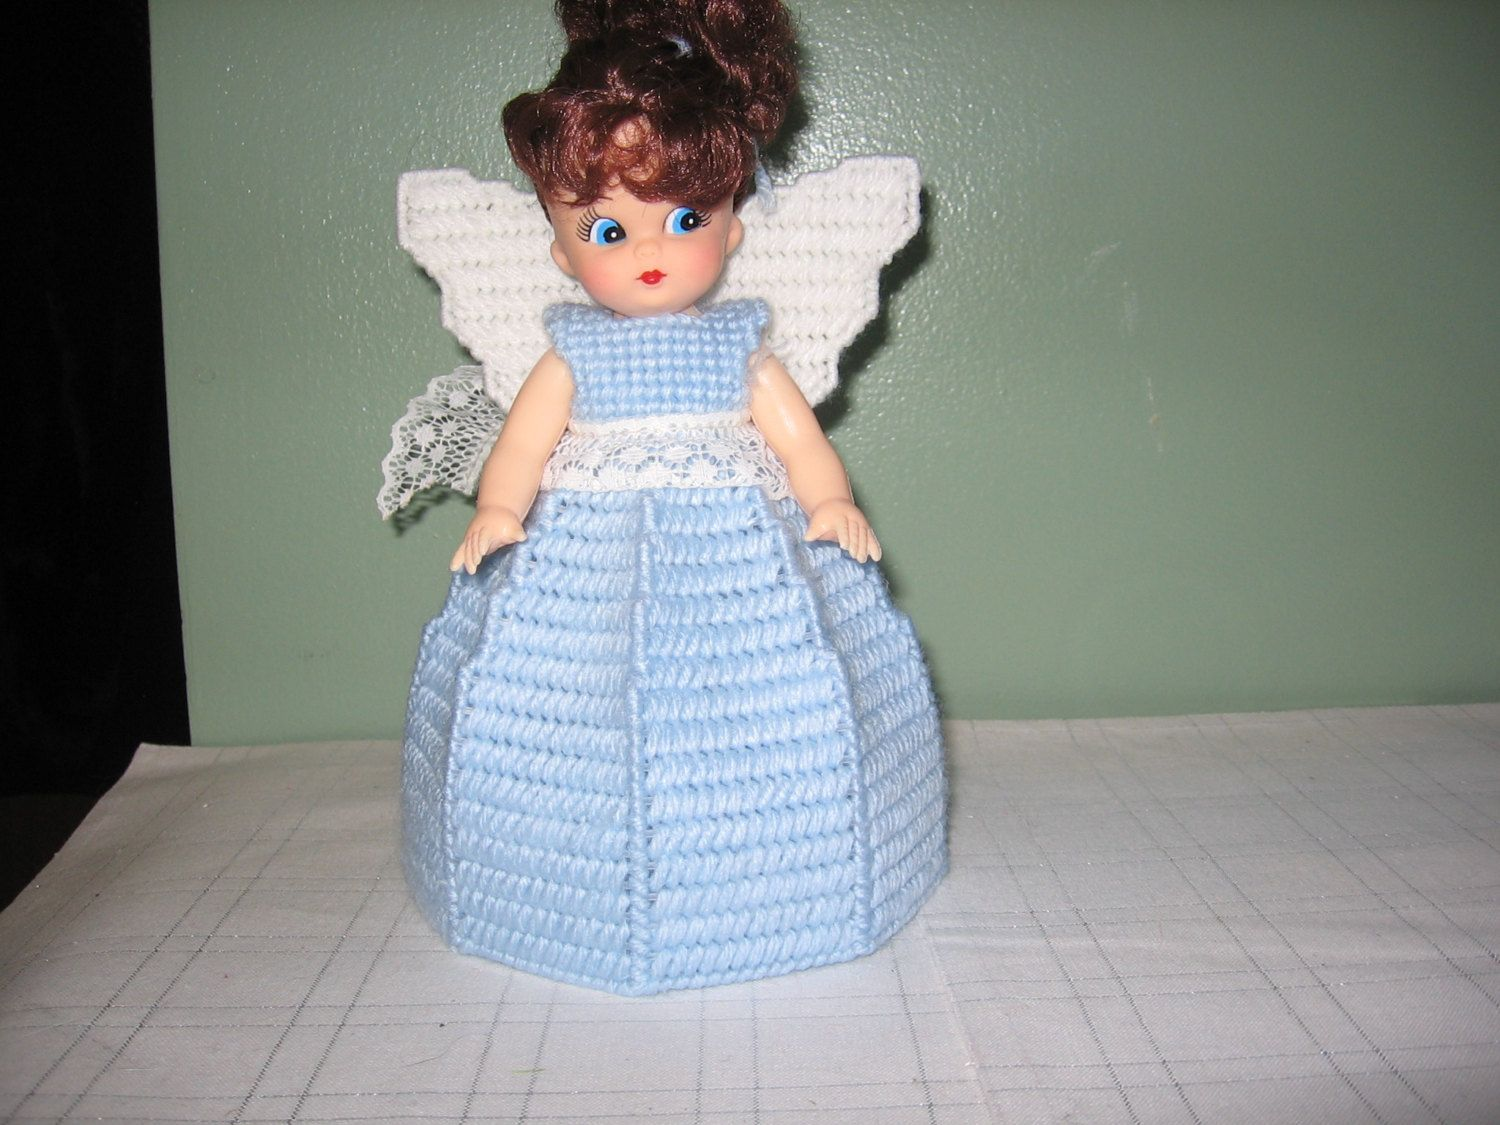 Light Blue Angel Air Freshner or Angel Tree Topper Collectible Doll by CreationsbyAMJ on Etsy #airfreshnerdolls